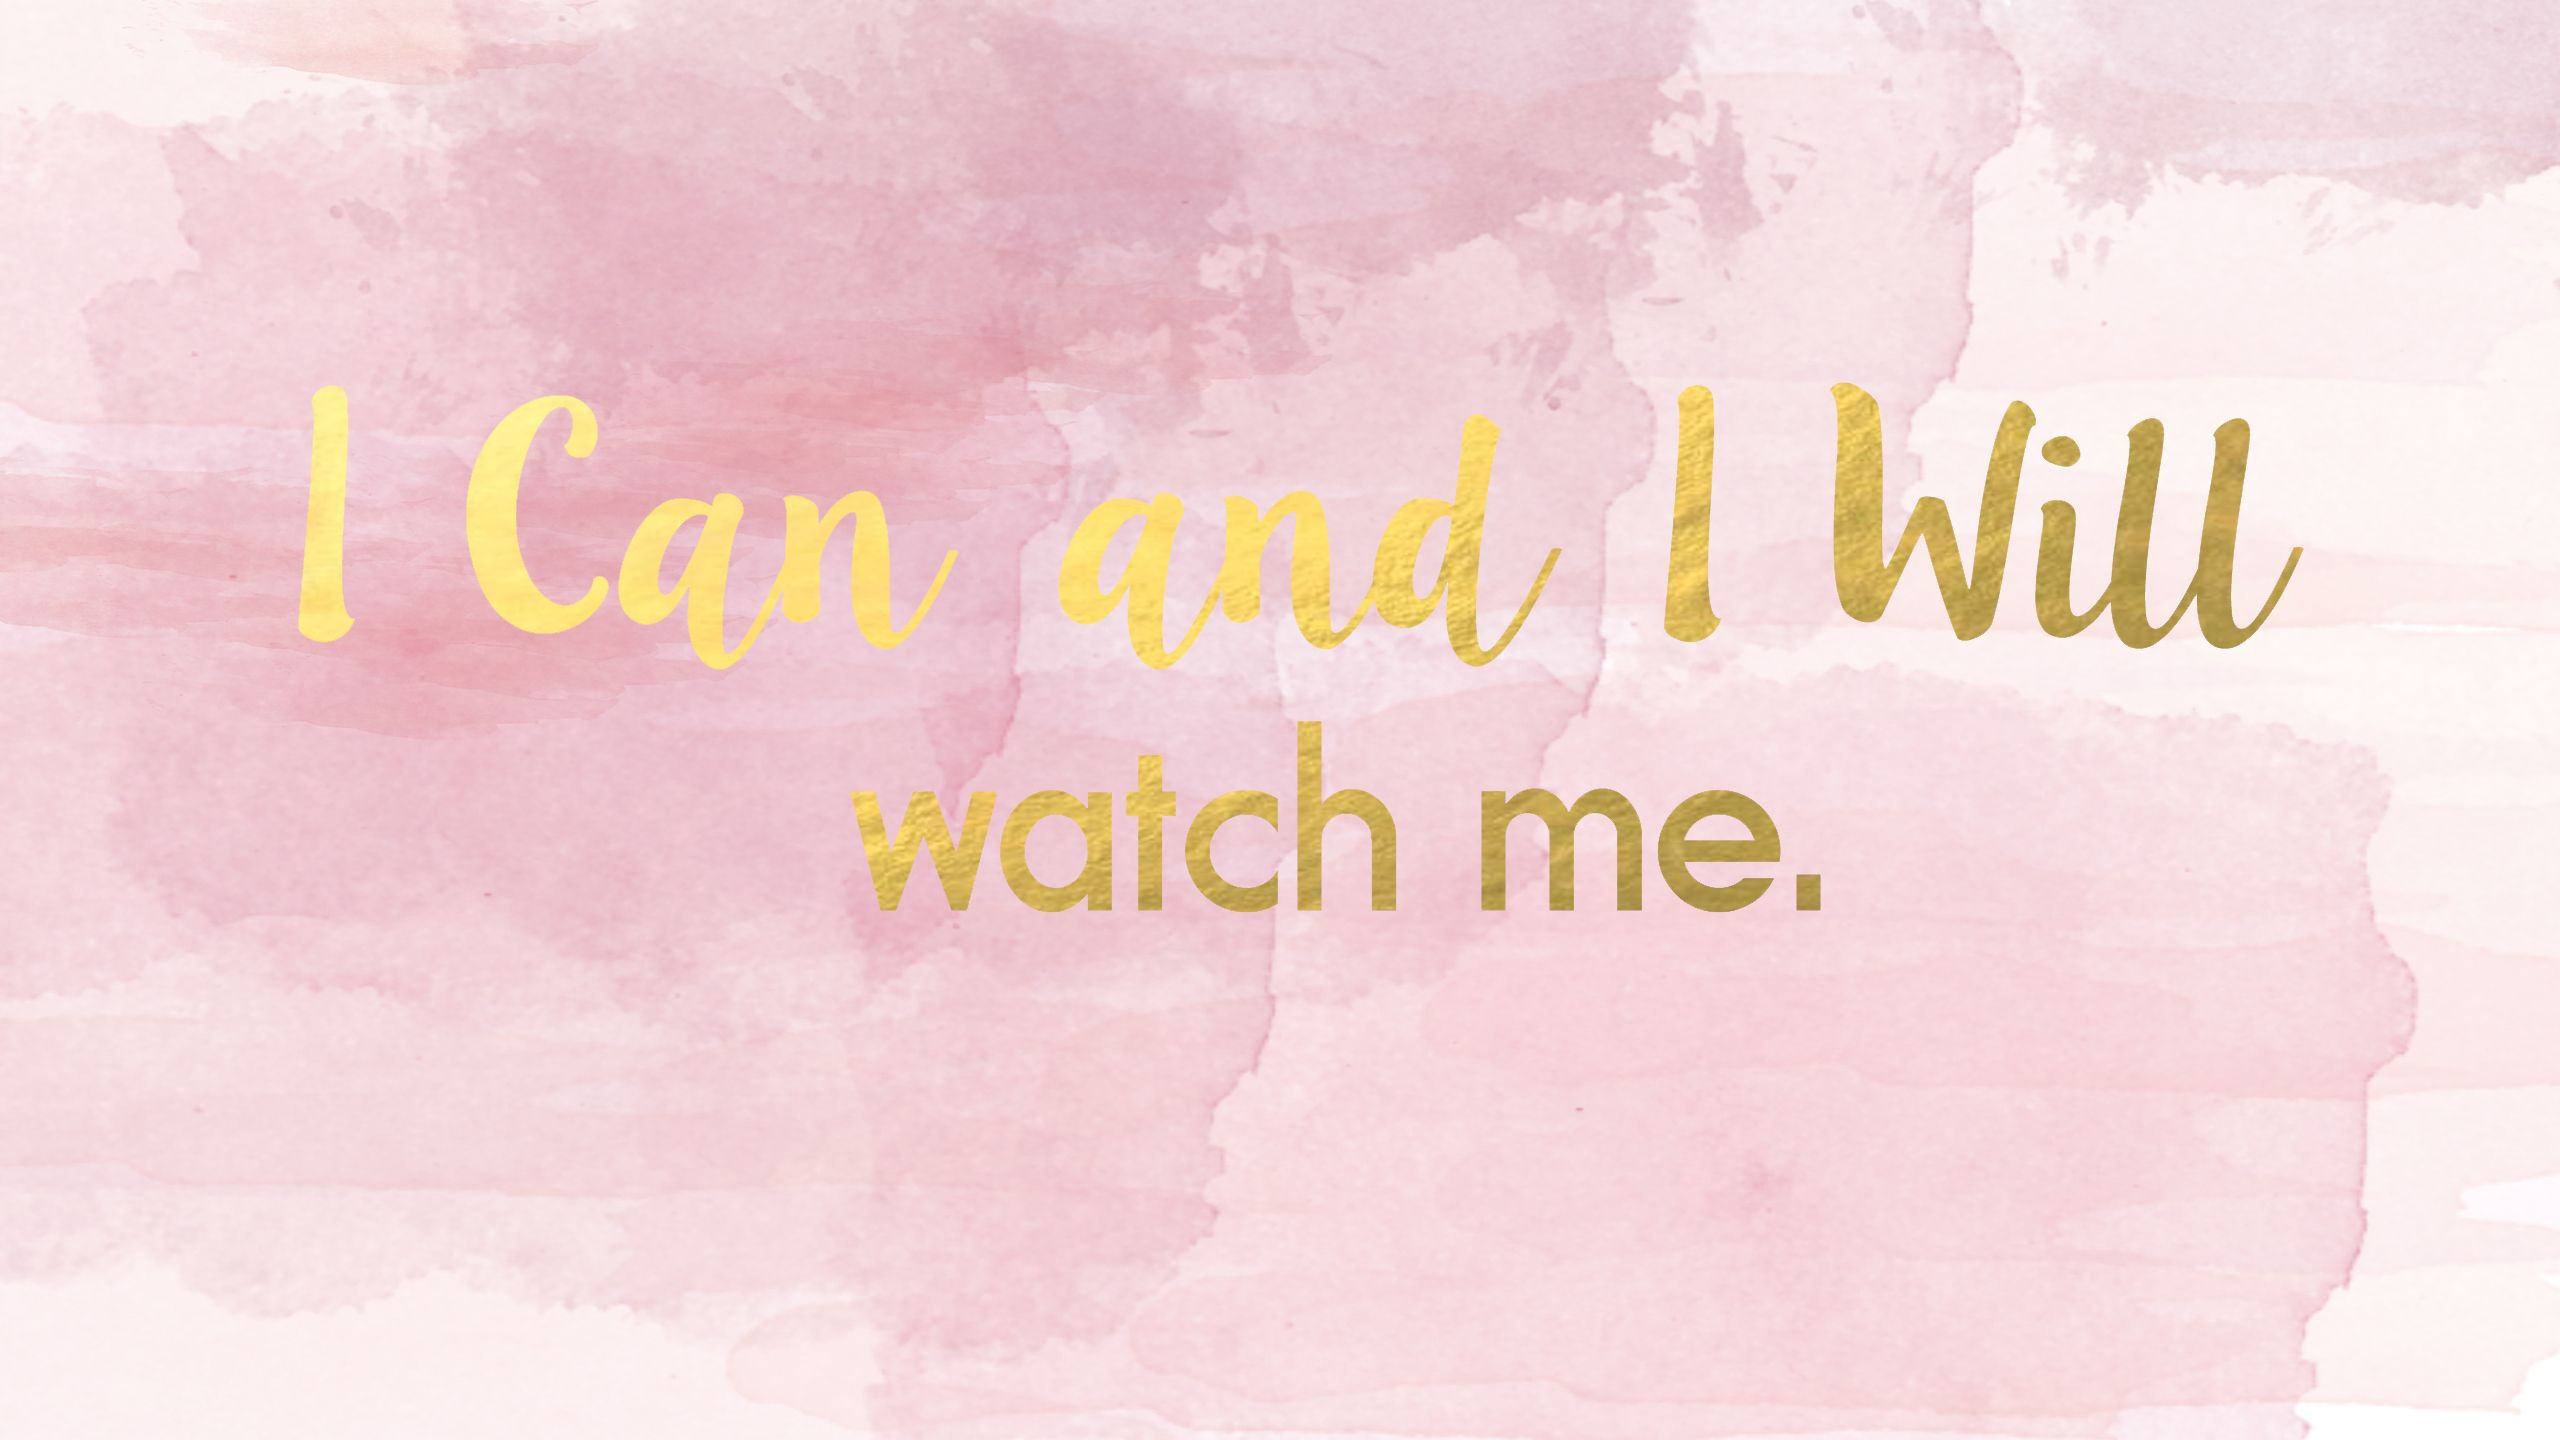 I Can And I Will Desktop Wallpaper Pink Pastel And Gold Pink Wallpaper Desktop Laptop Wallpaper Mac Wallpaper Desktop